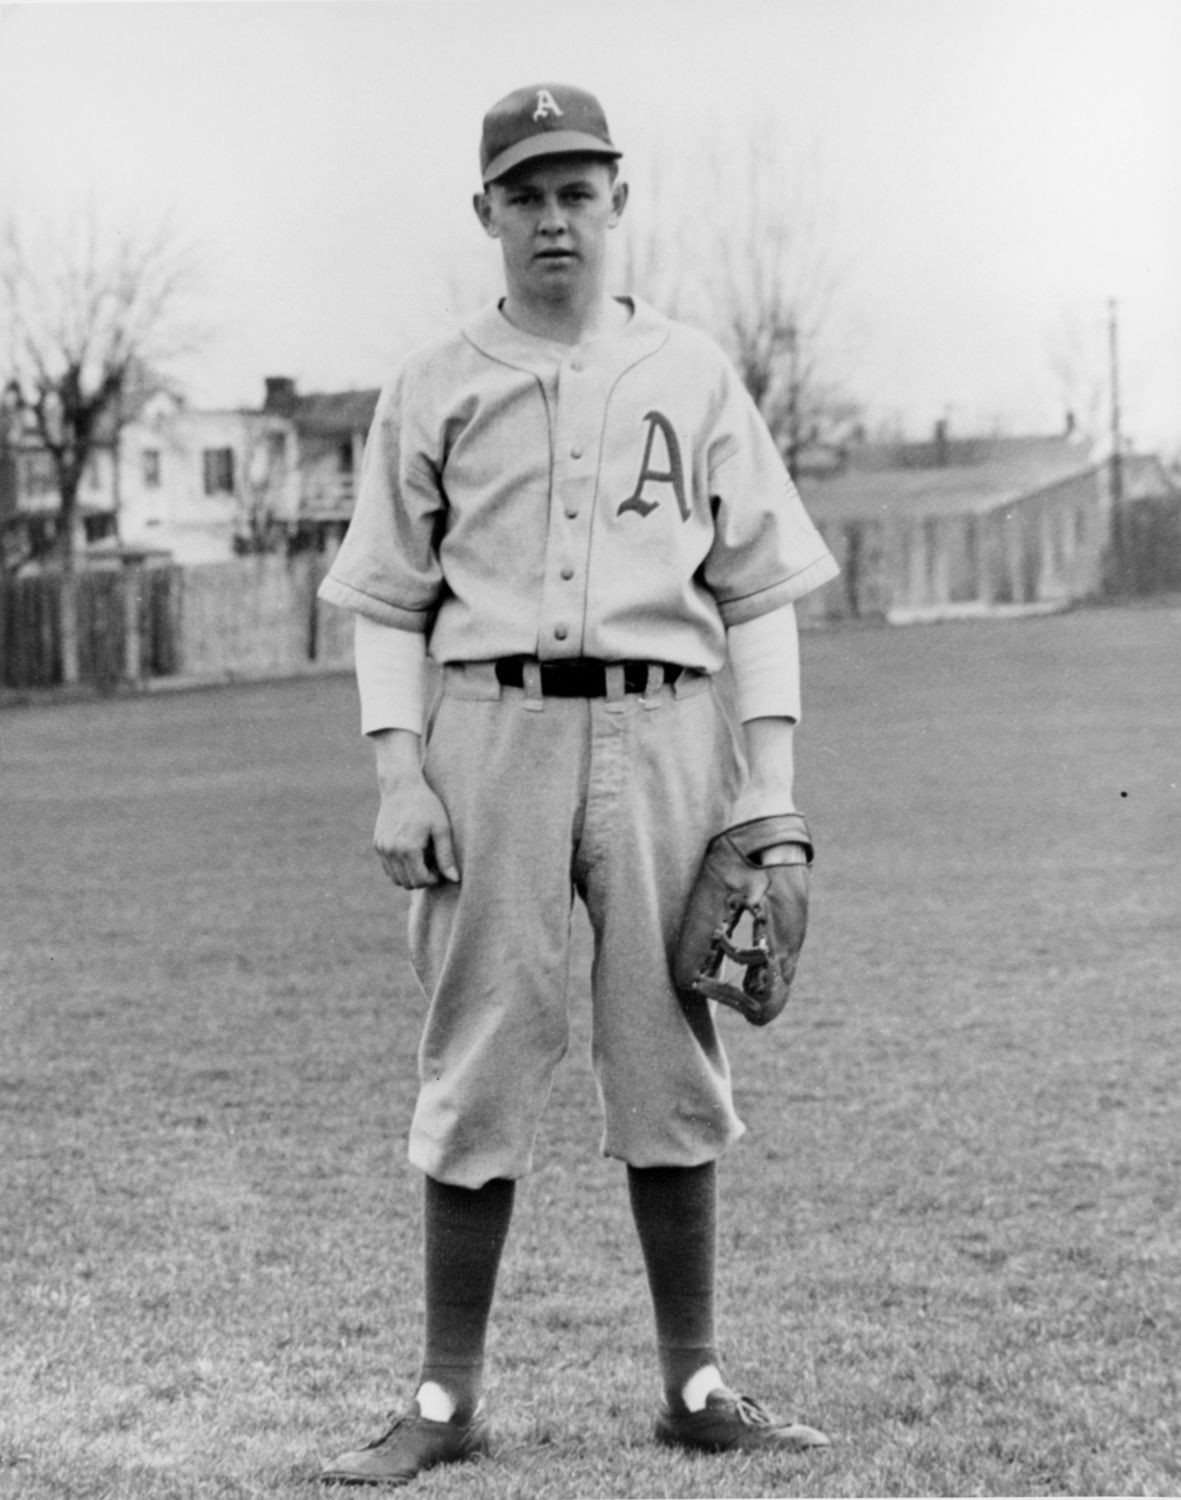 White Sox acquire future Hall of Famer Nellie Fox from the